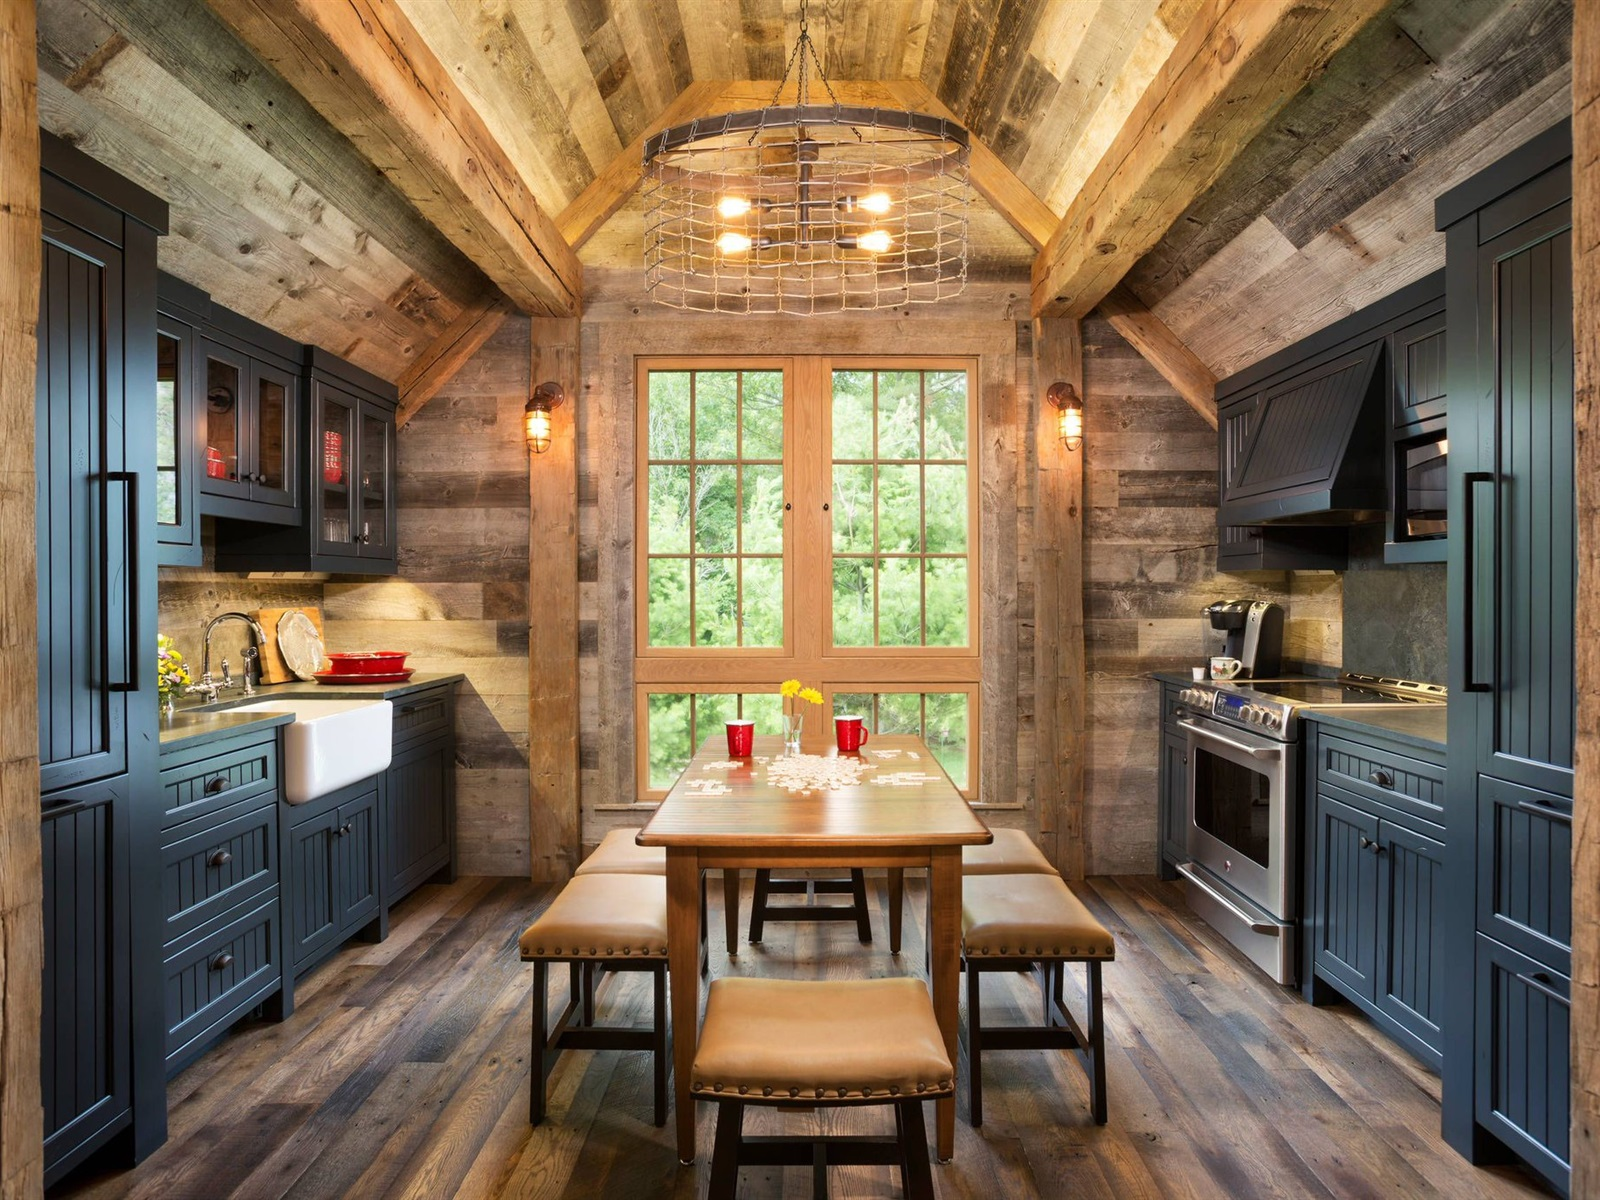 Wallpaper kitchen wooden house table lights 1920x1200 for Wallpaper with houses on it